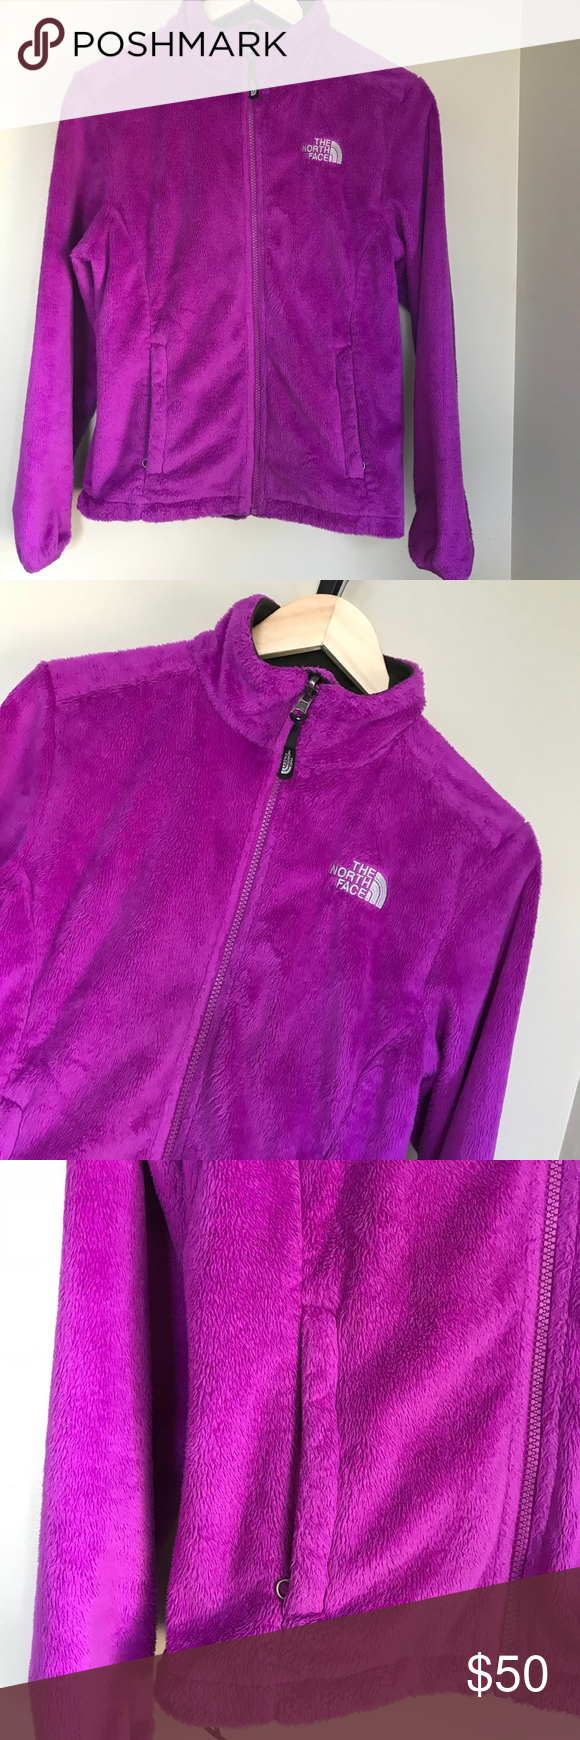 Sold The North Face Osito Purple Fleece Jacket S Fleece Jacket Jackets The North Face [ 1740 x 580 Pixel ]